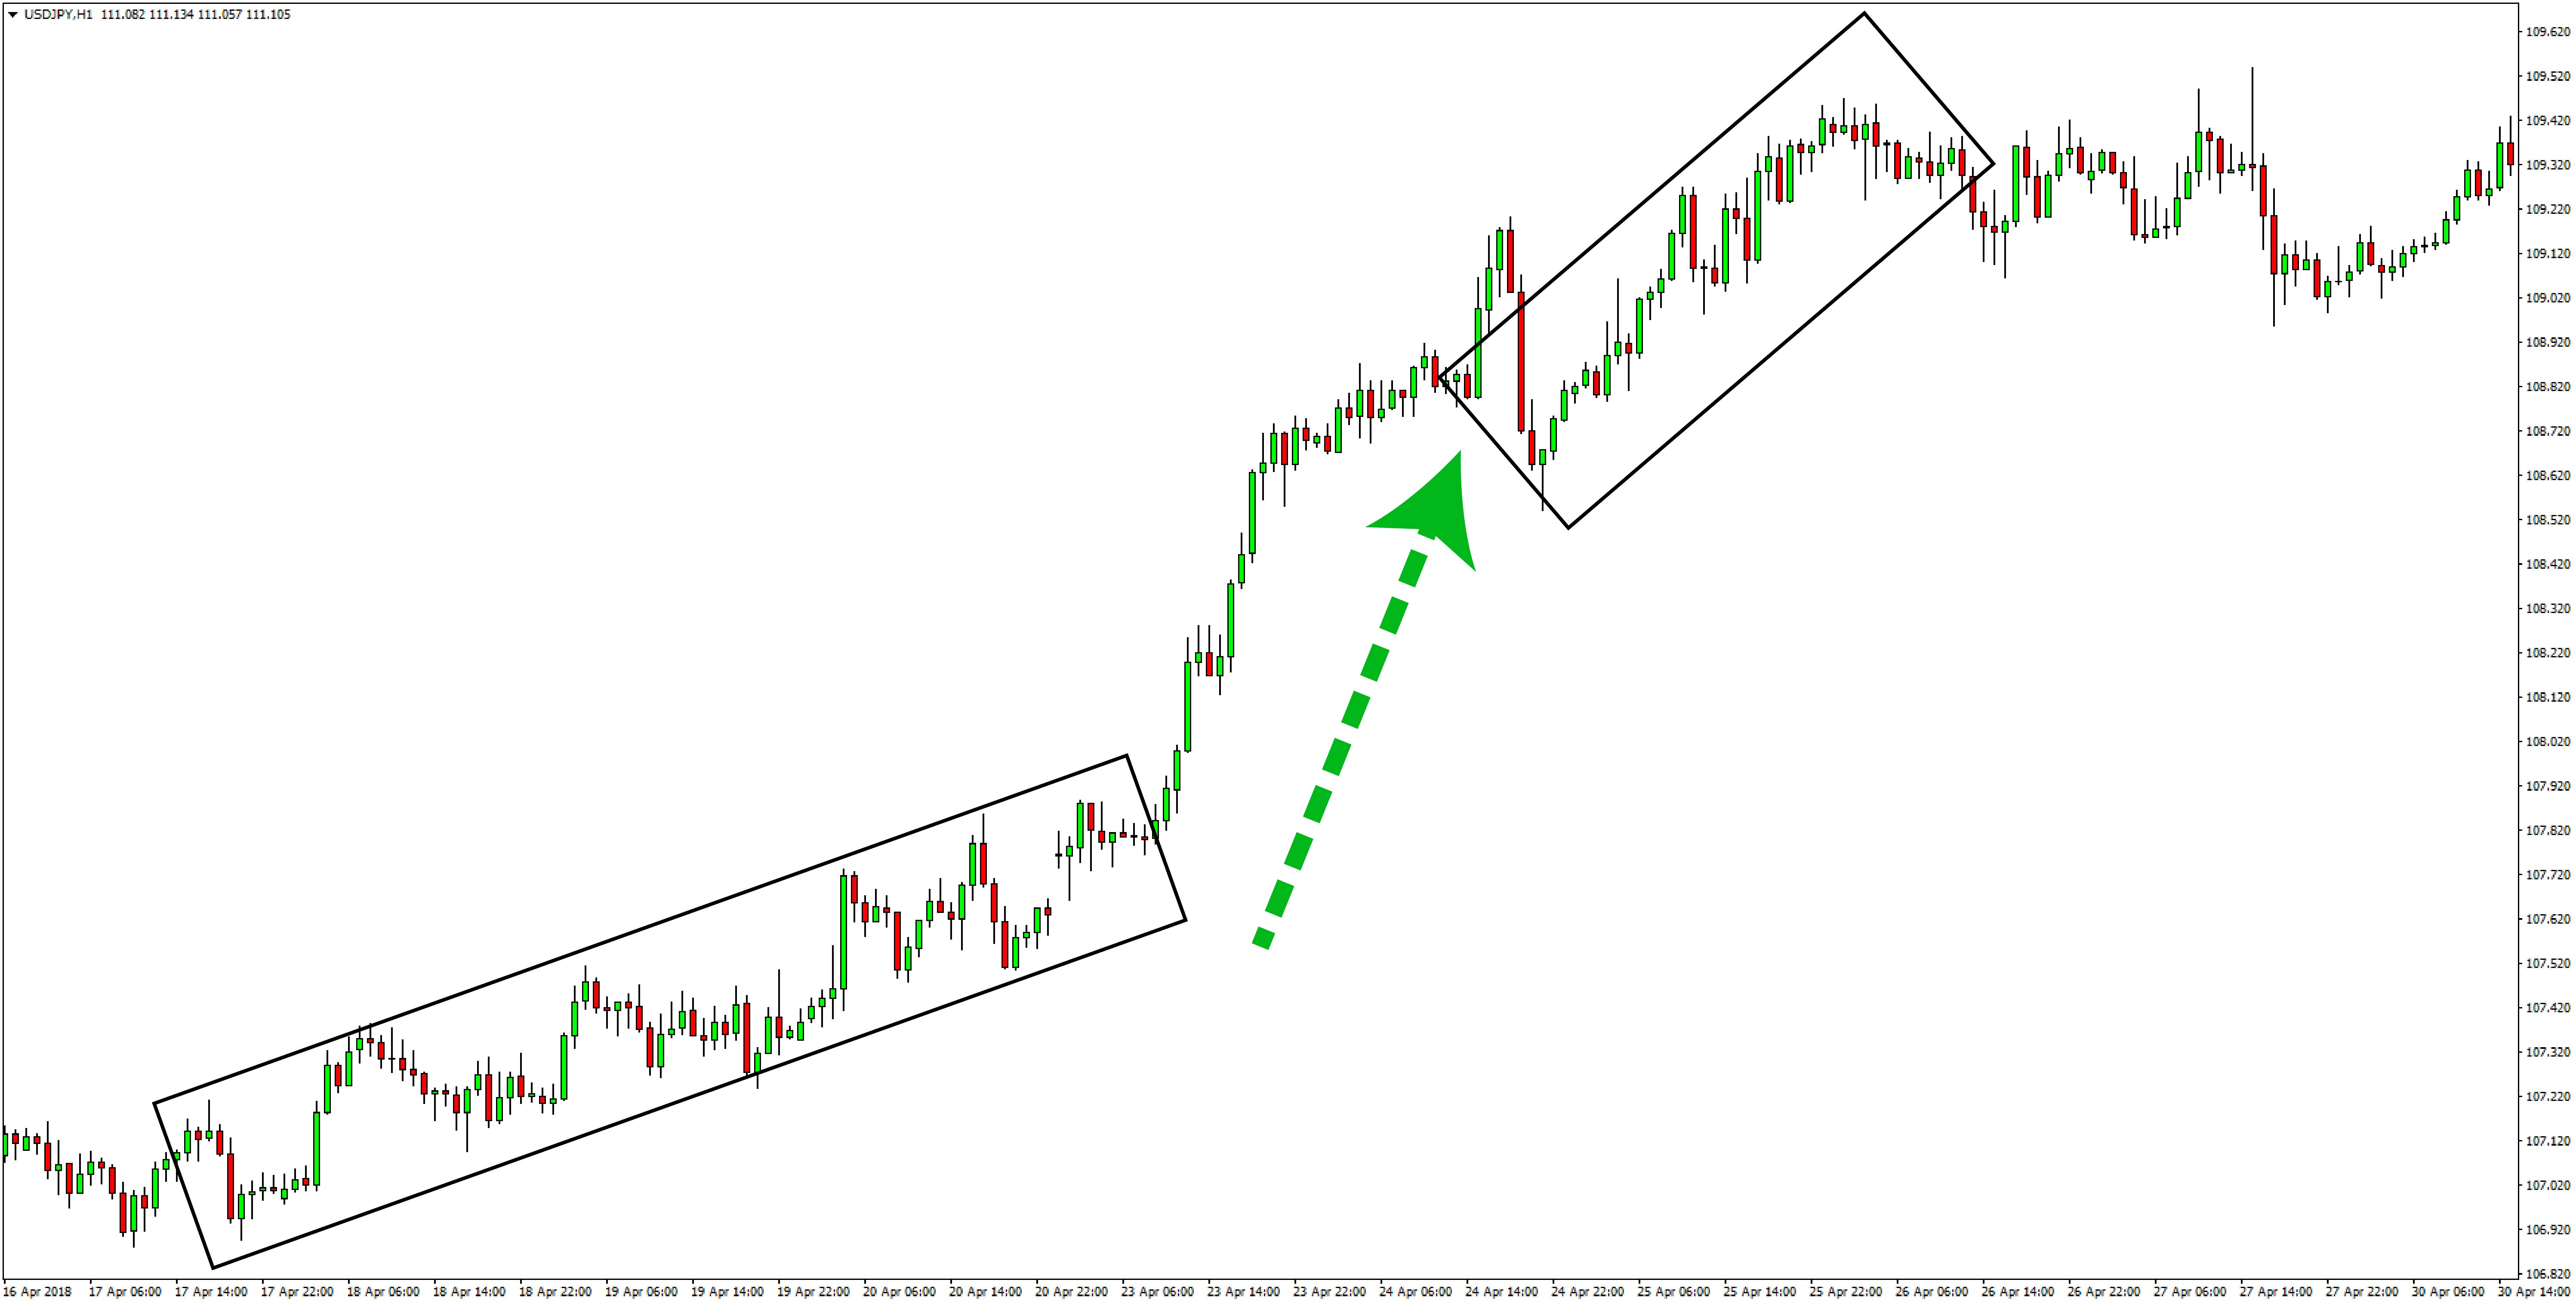 USDJPY Price Action Trading Strategy preview